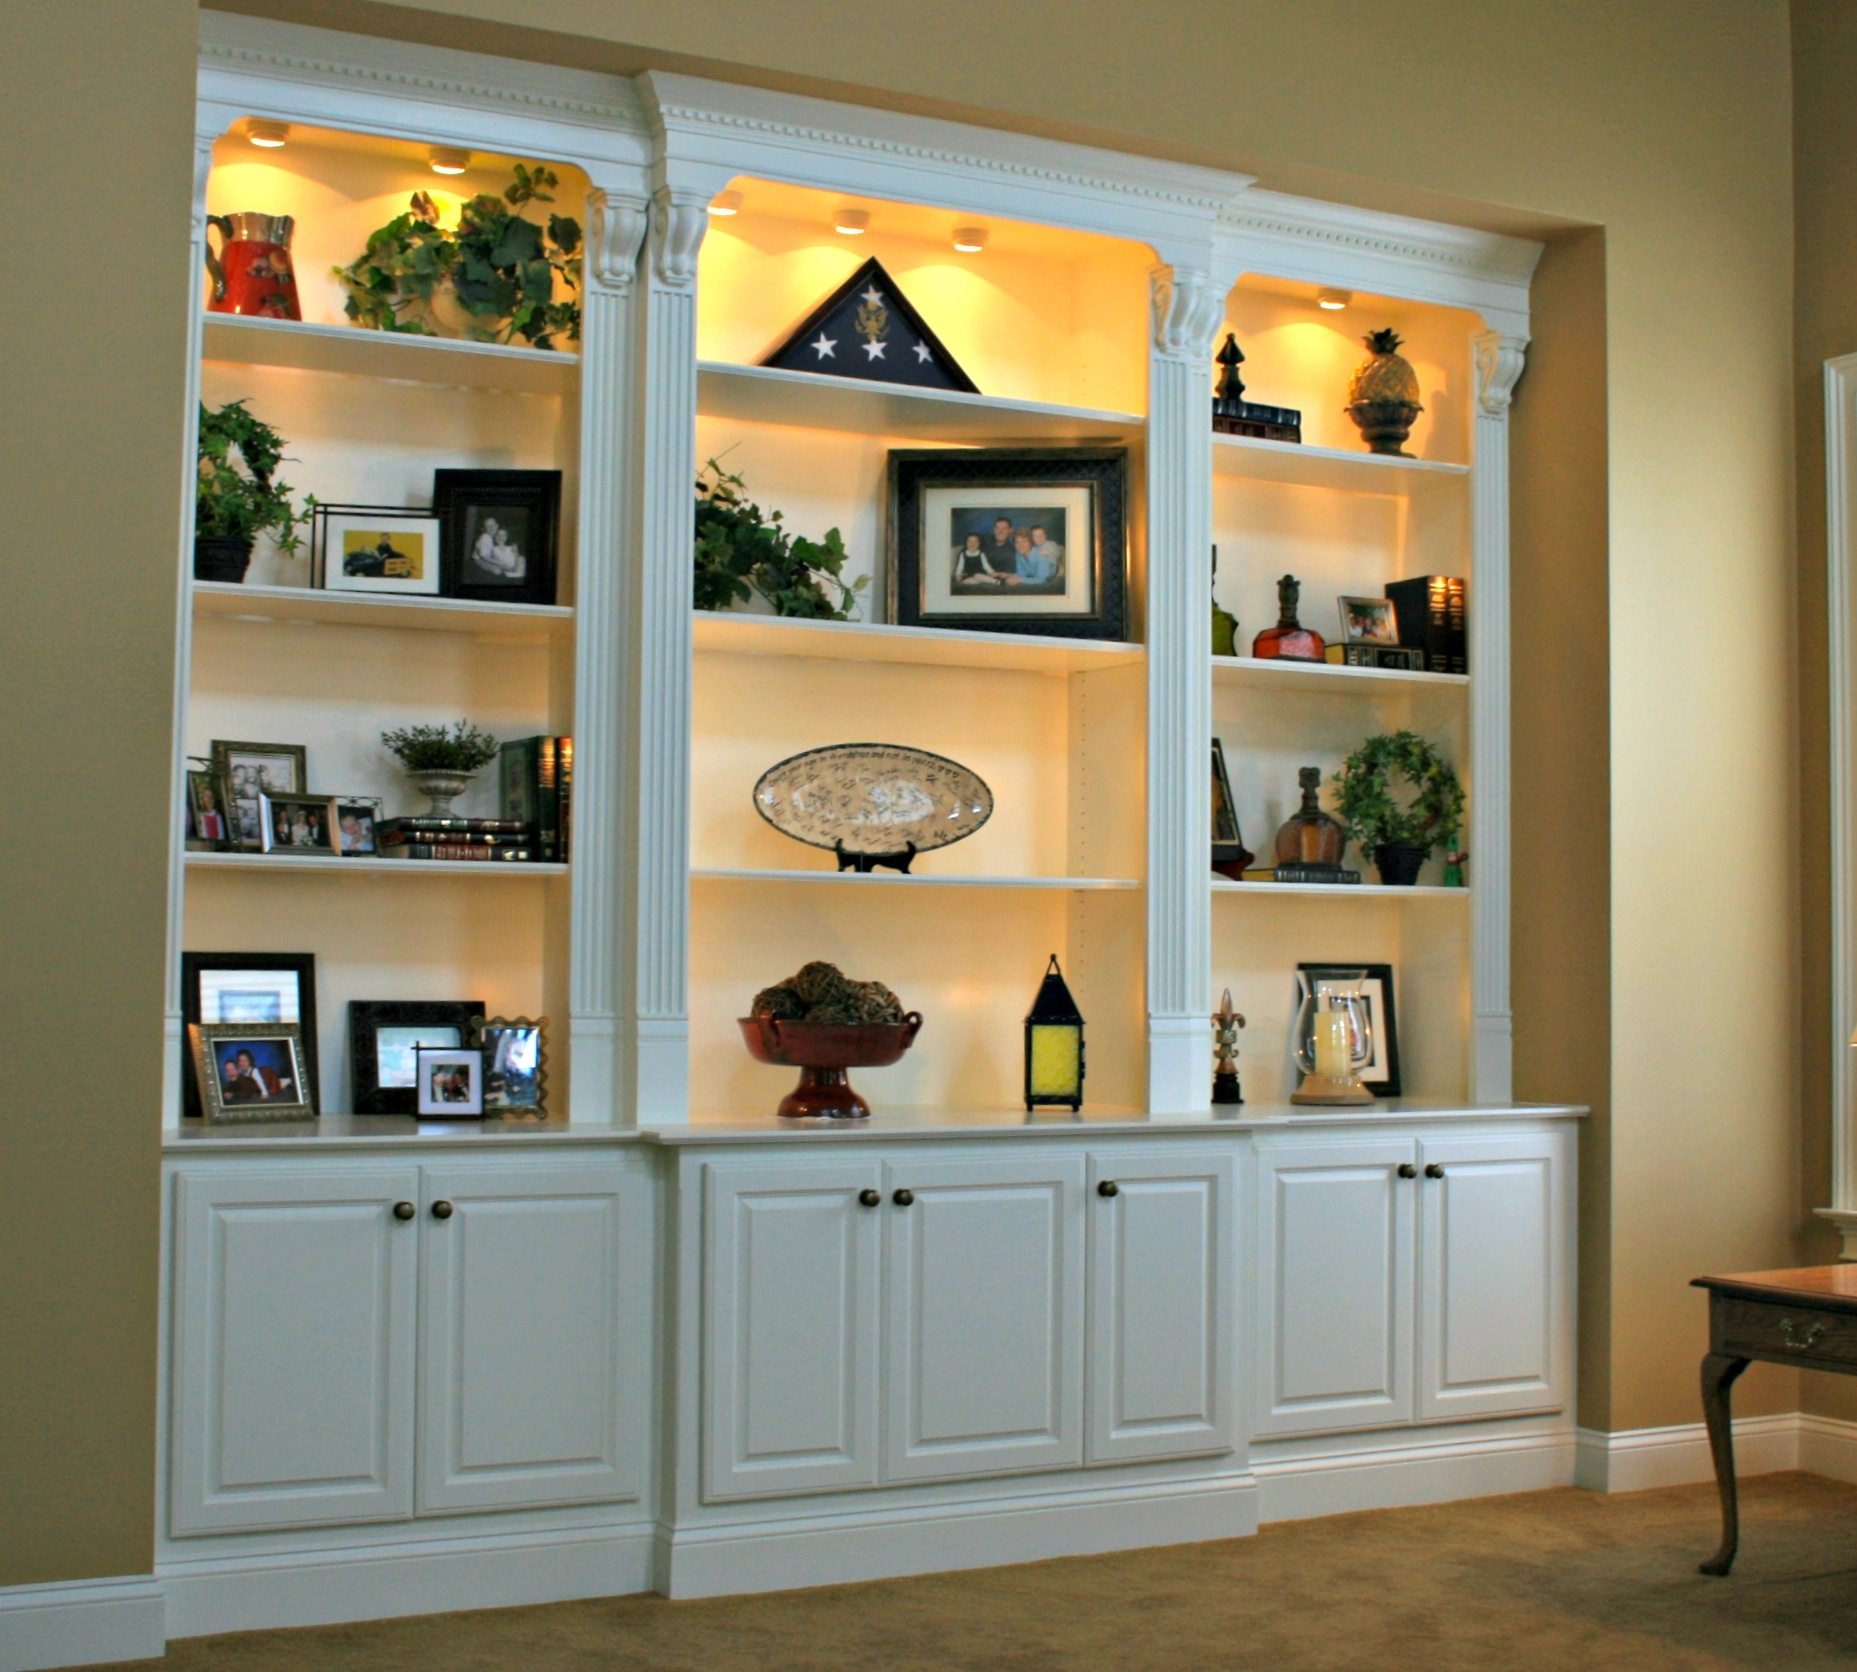 Display Cabinets are designed and built by Deacon Home